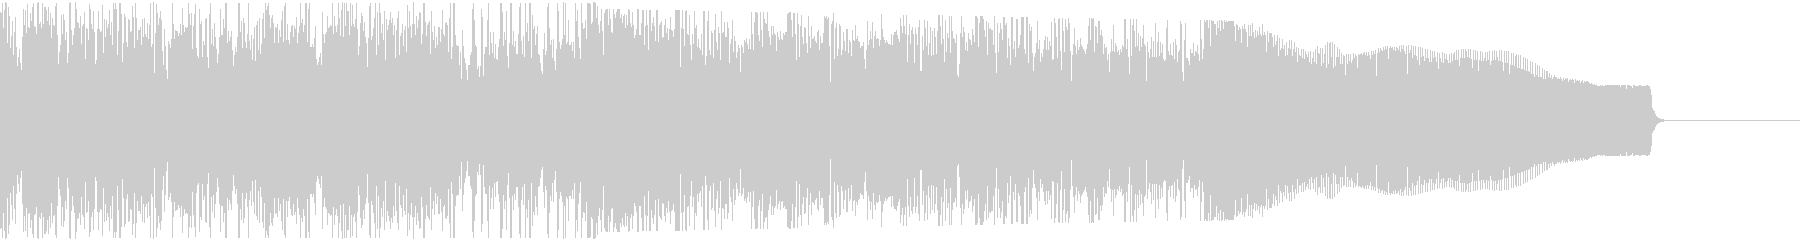 Country style guitar intro-06E's unreproduced waveform